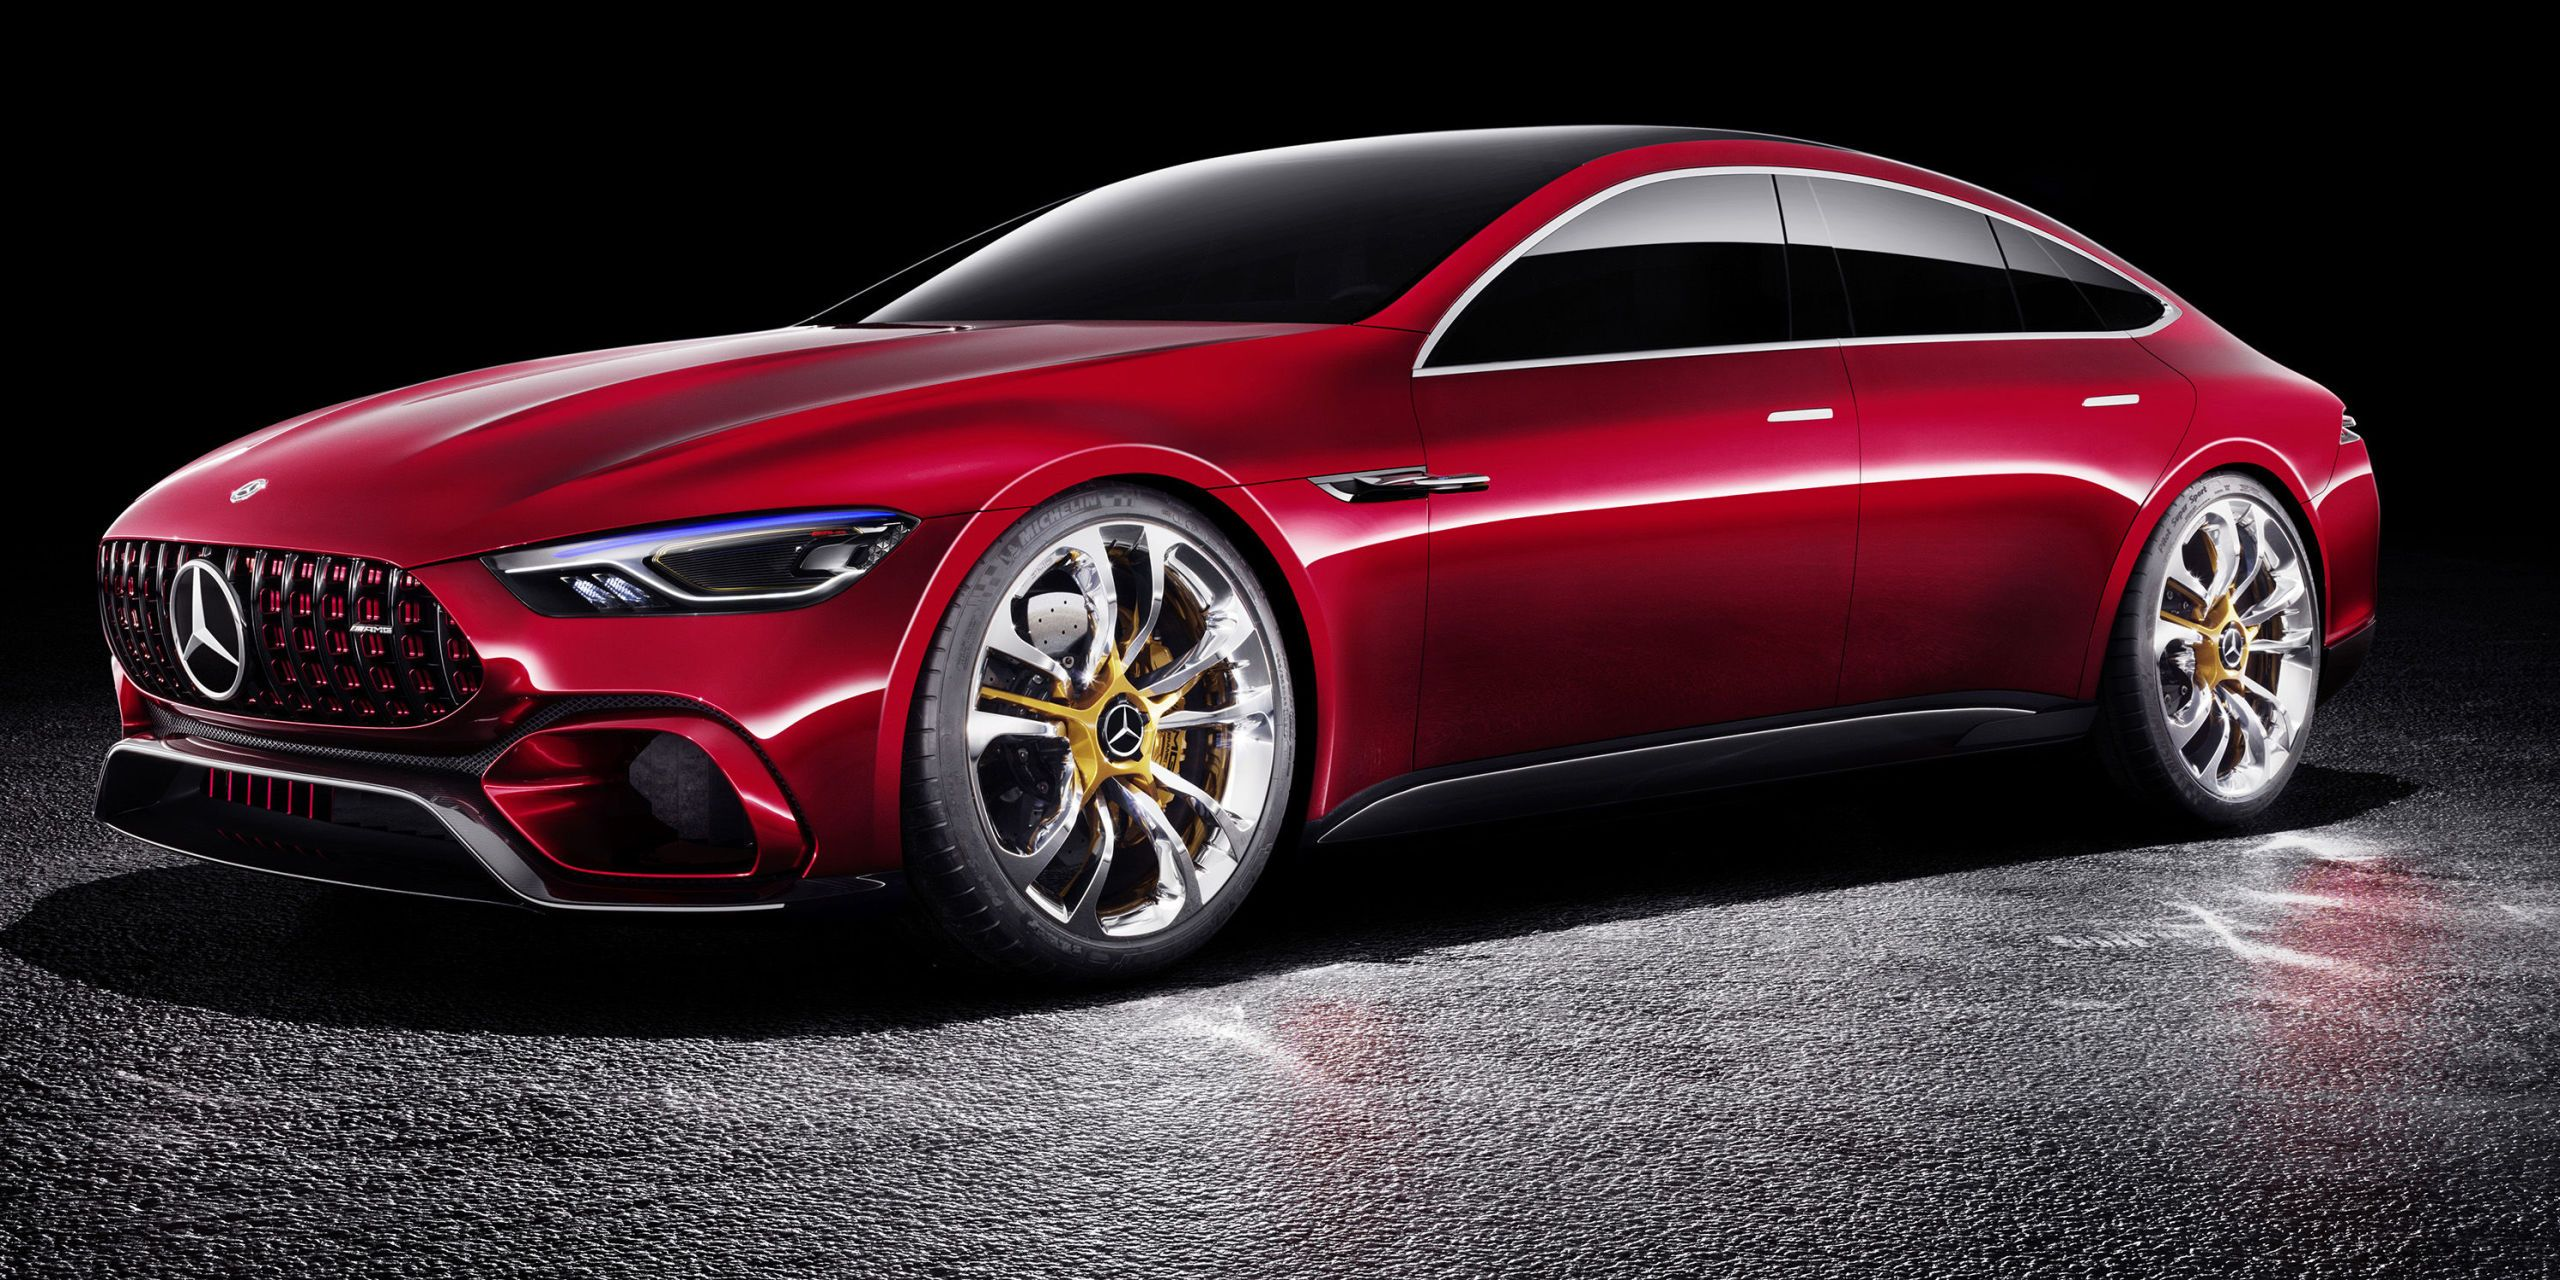 Have you ever looked at the muscular striking lines of the Mercedes-AMG GT coupe and wished for two more doors? Neither have we but thatu0027s exactly what ... & Mercedes-AMG GT Concept Brings Four Doors and 805 Hybrid Horsepower